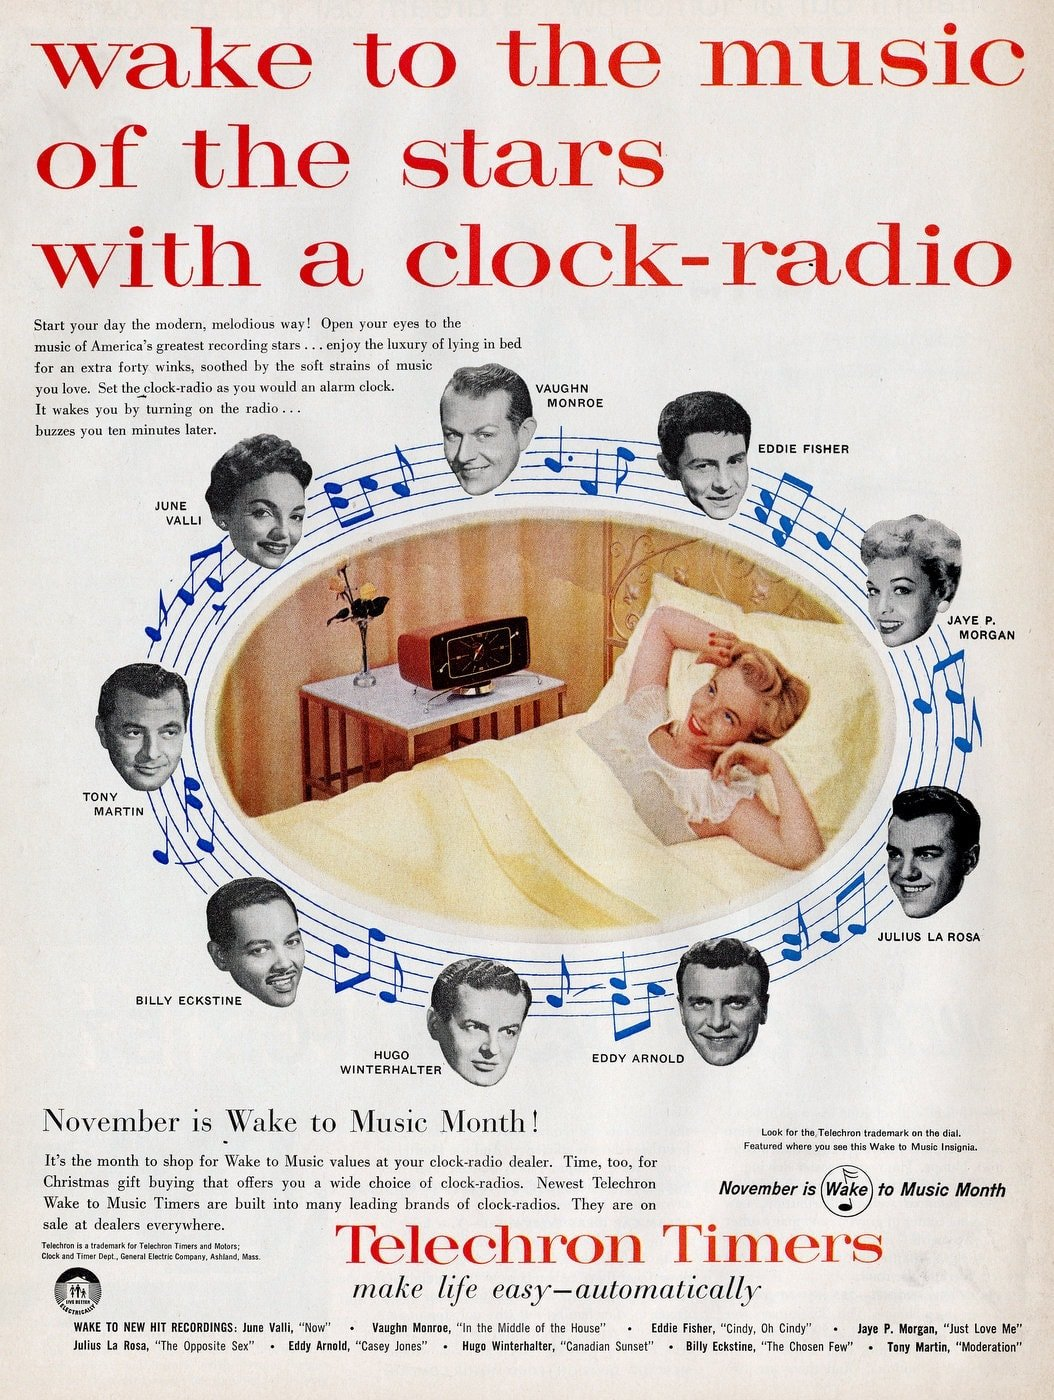 Vintage alarm clocks - Techron Timers from 1956